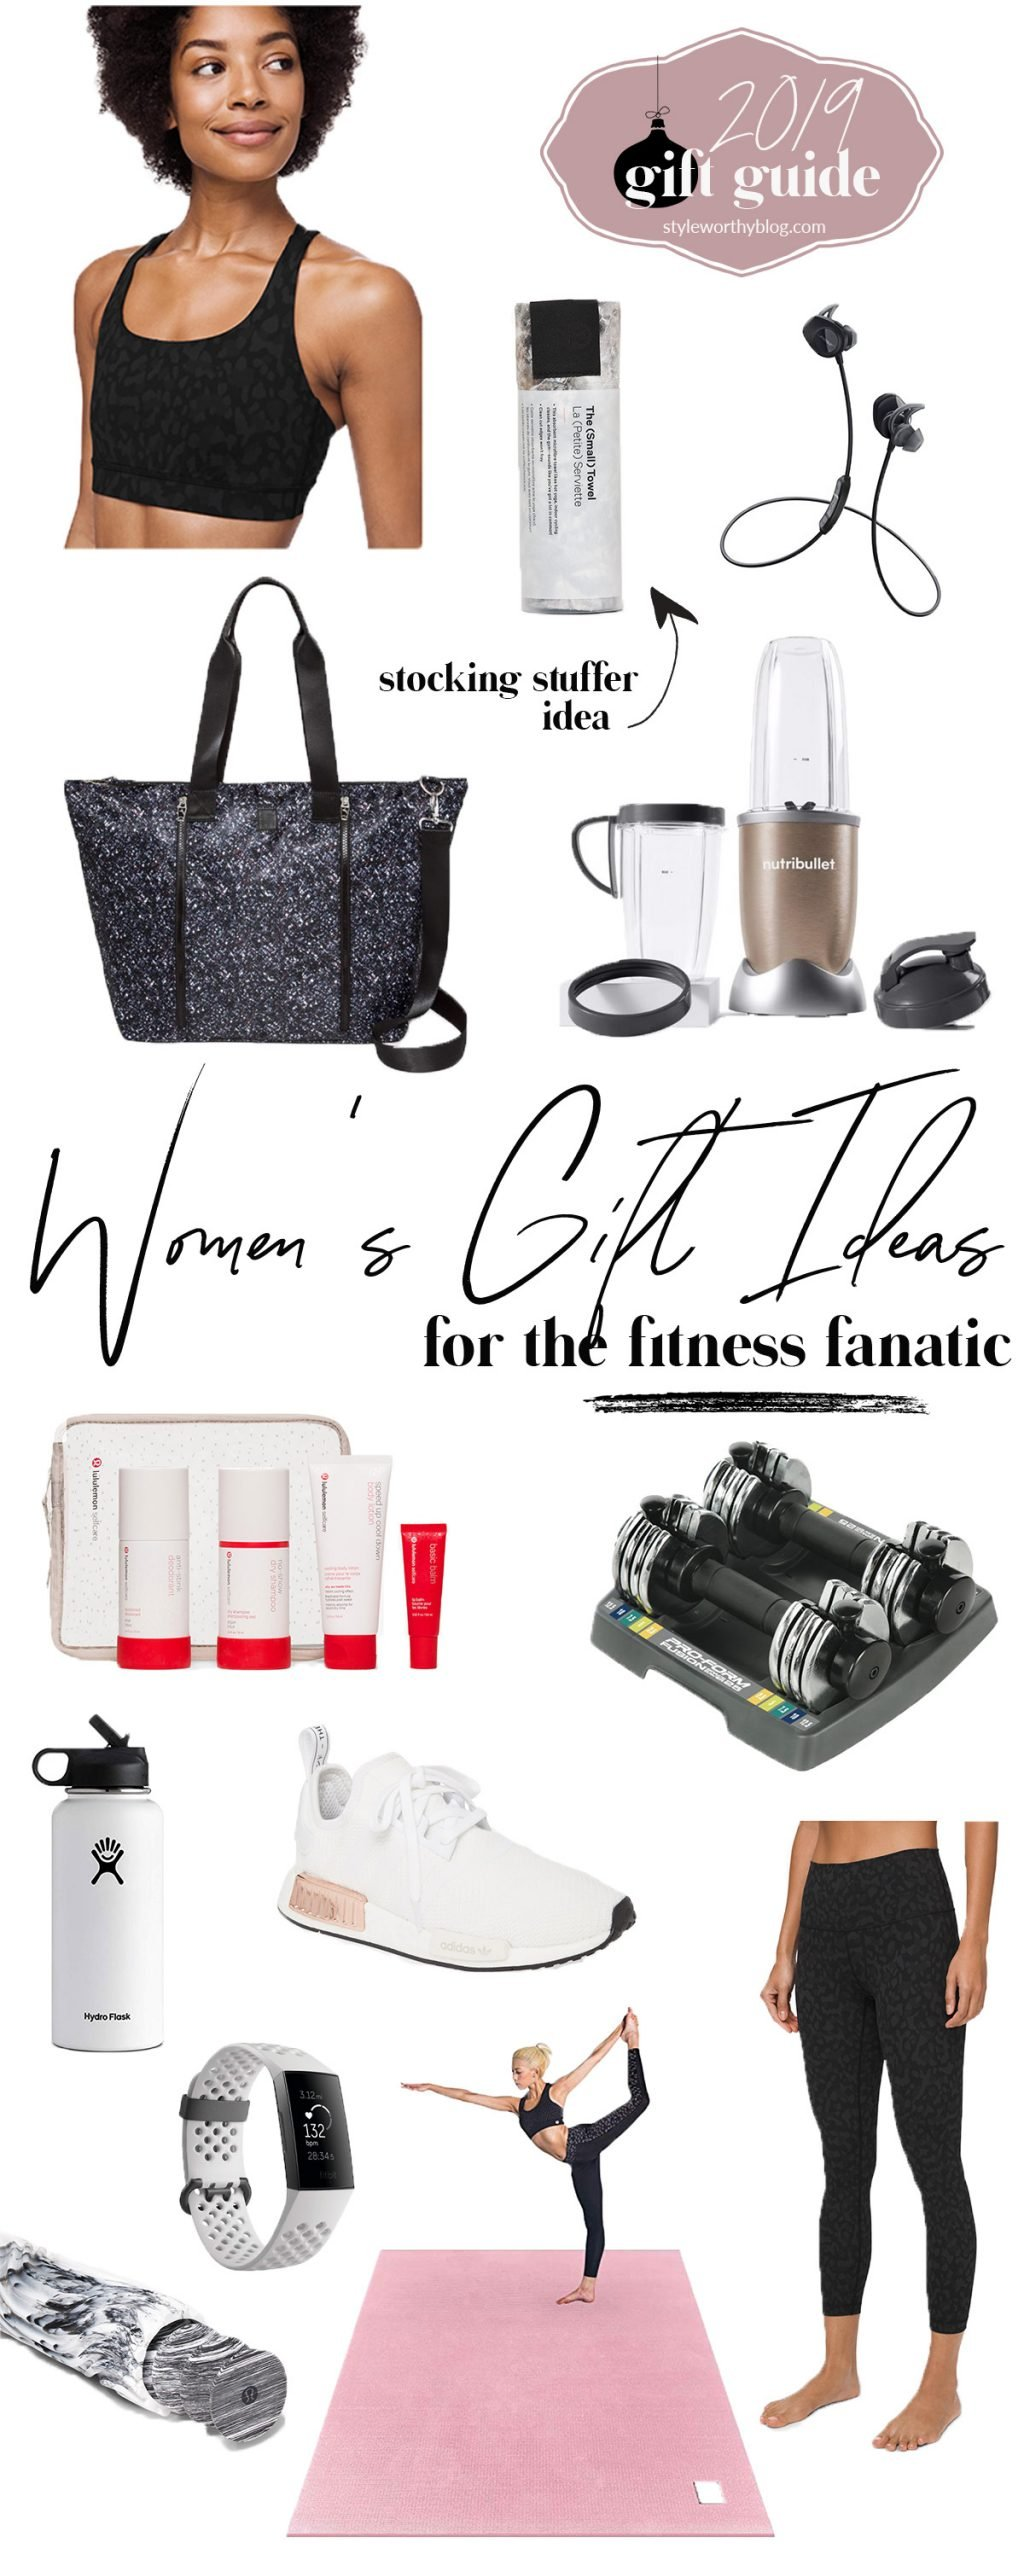 Women's gift guide. Gift ideas for the fitness fanatic